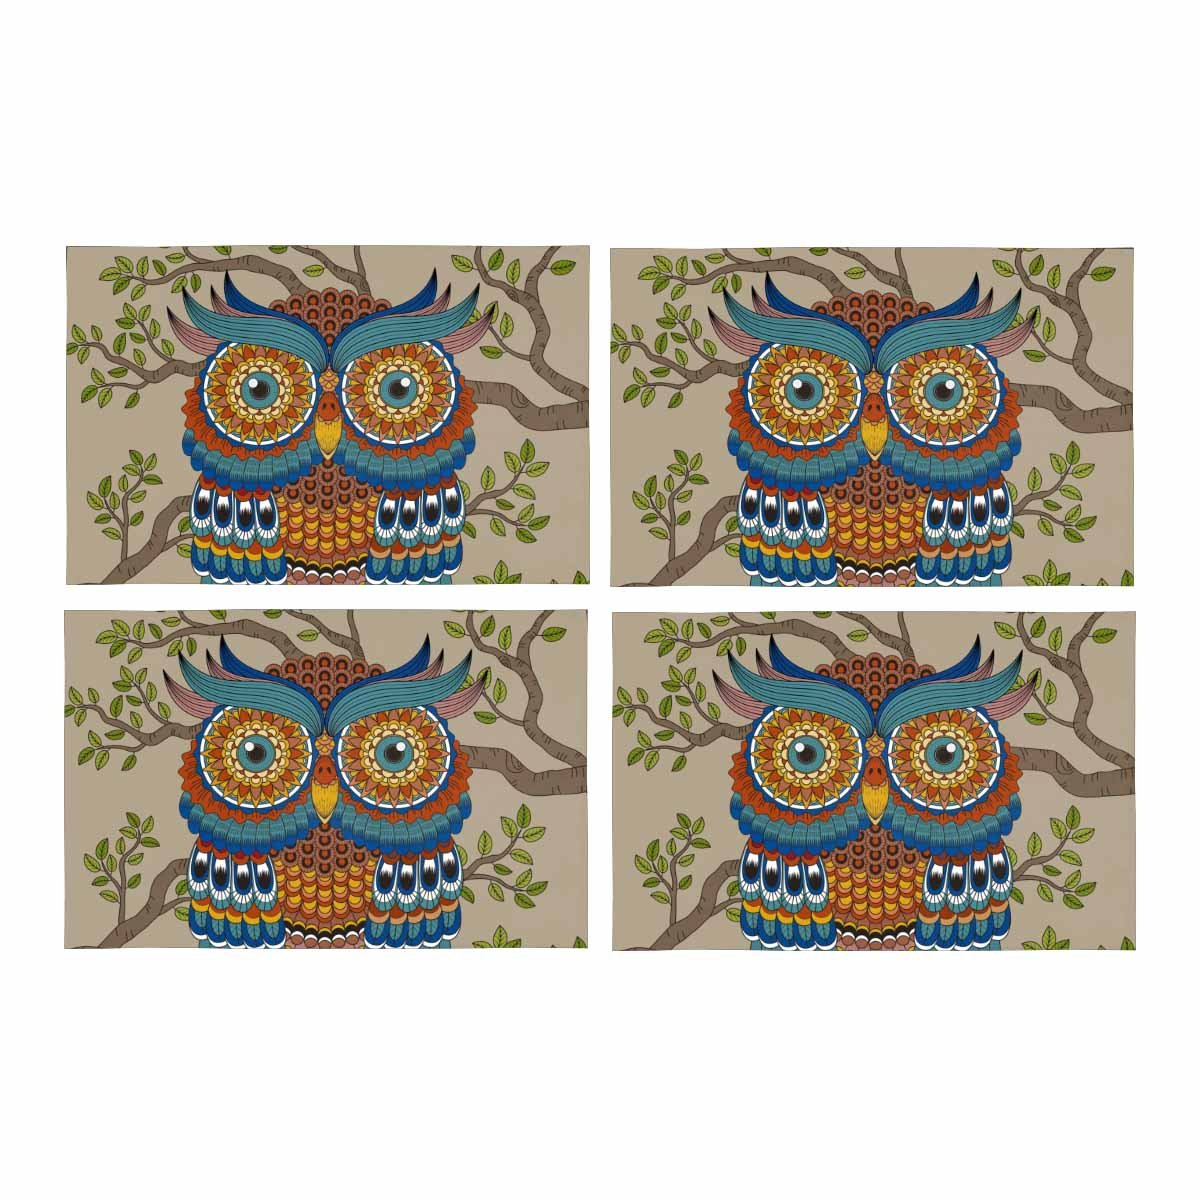 InterestPrint Gorgeous Owl In The Tree Cartoon Animal Placemat Place Mat Set of 4, Table Place Mats for Kitchen Dining Table Restaurant Home Decor 12''x18''